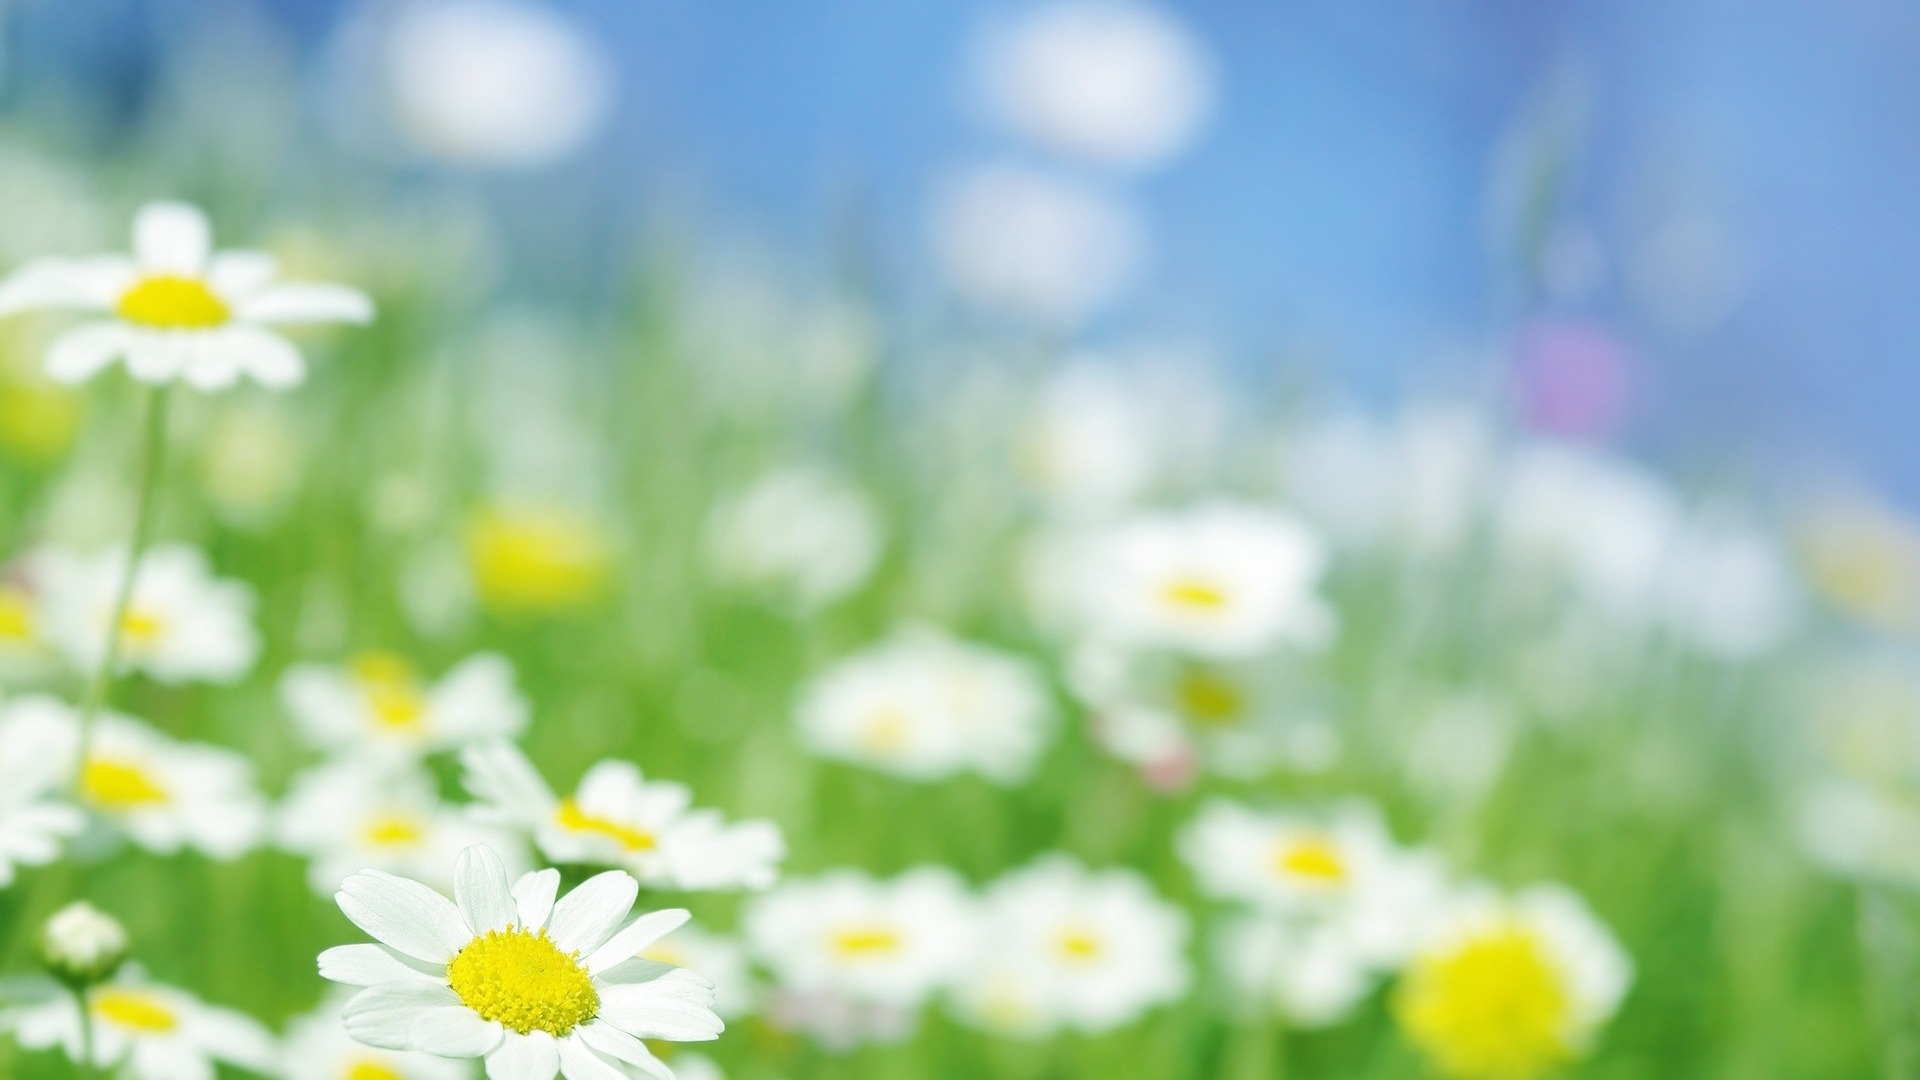 nature daisies wallpaper backgrounds field light daisy